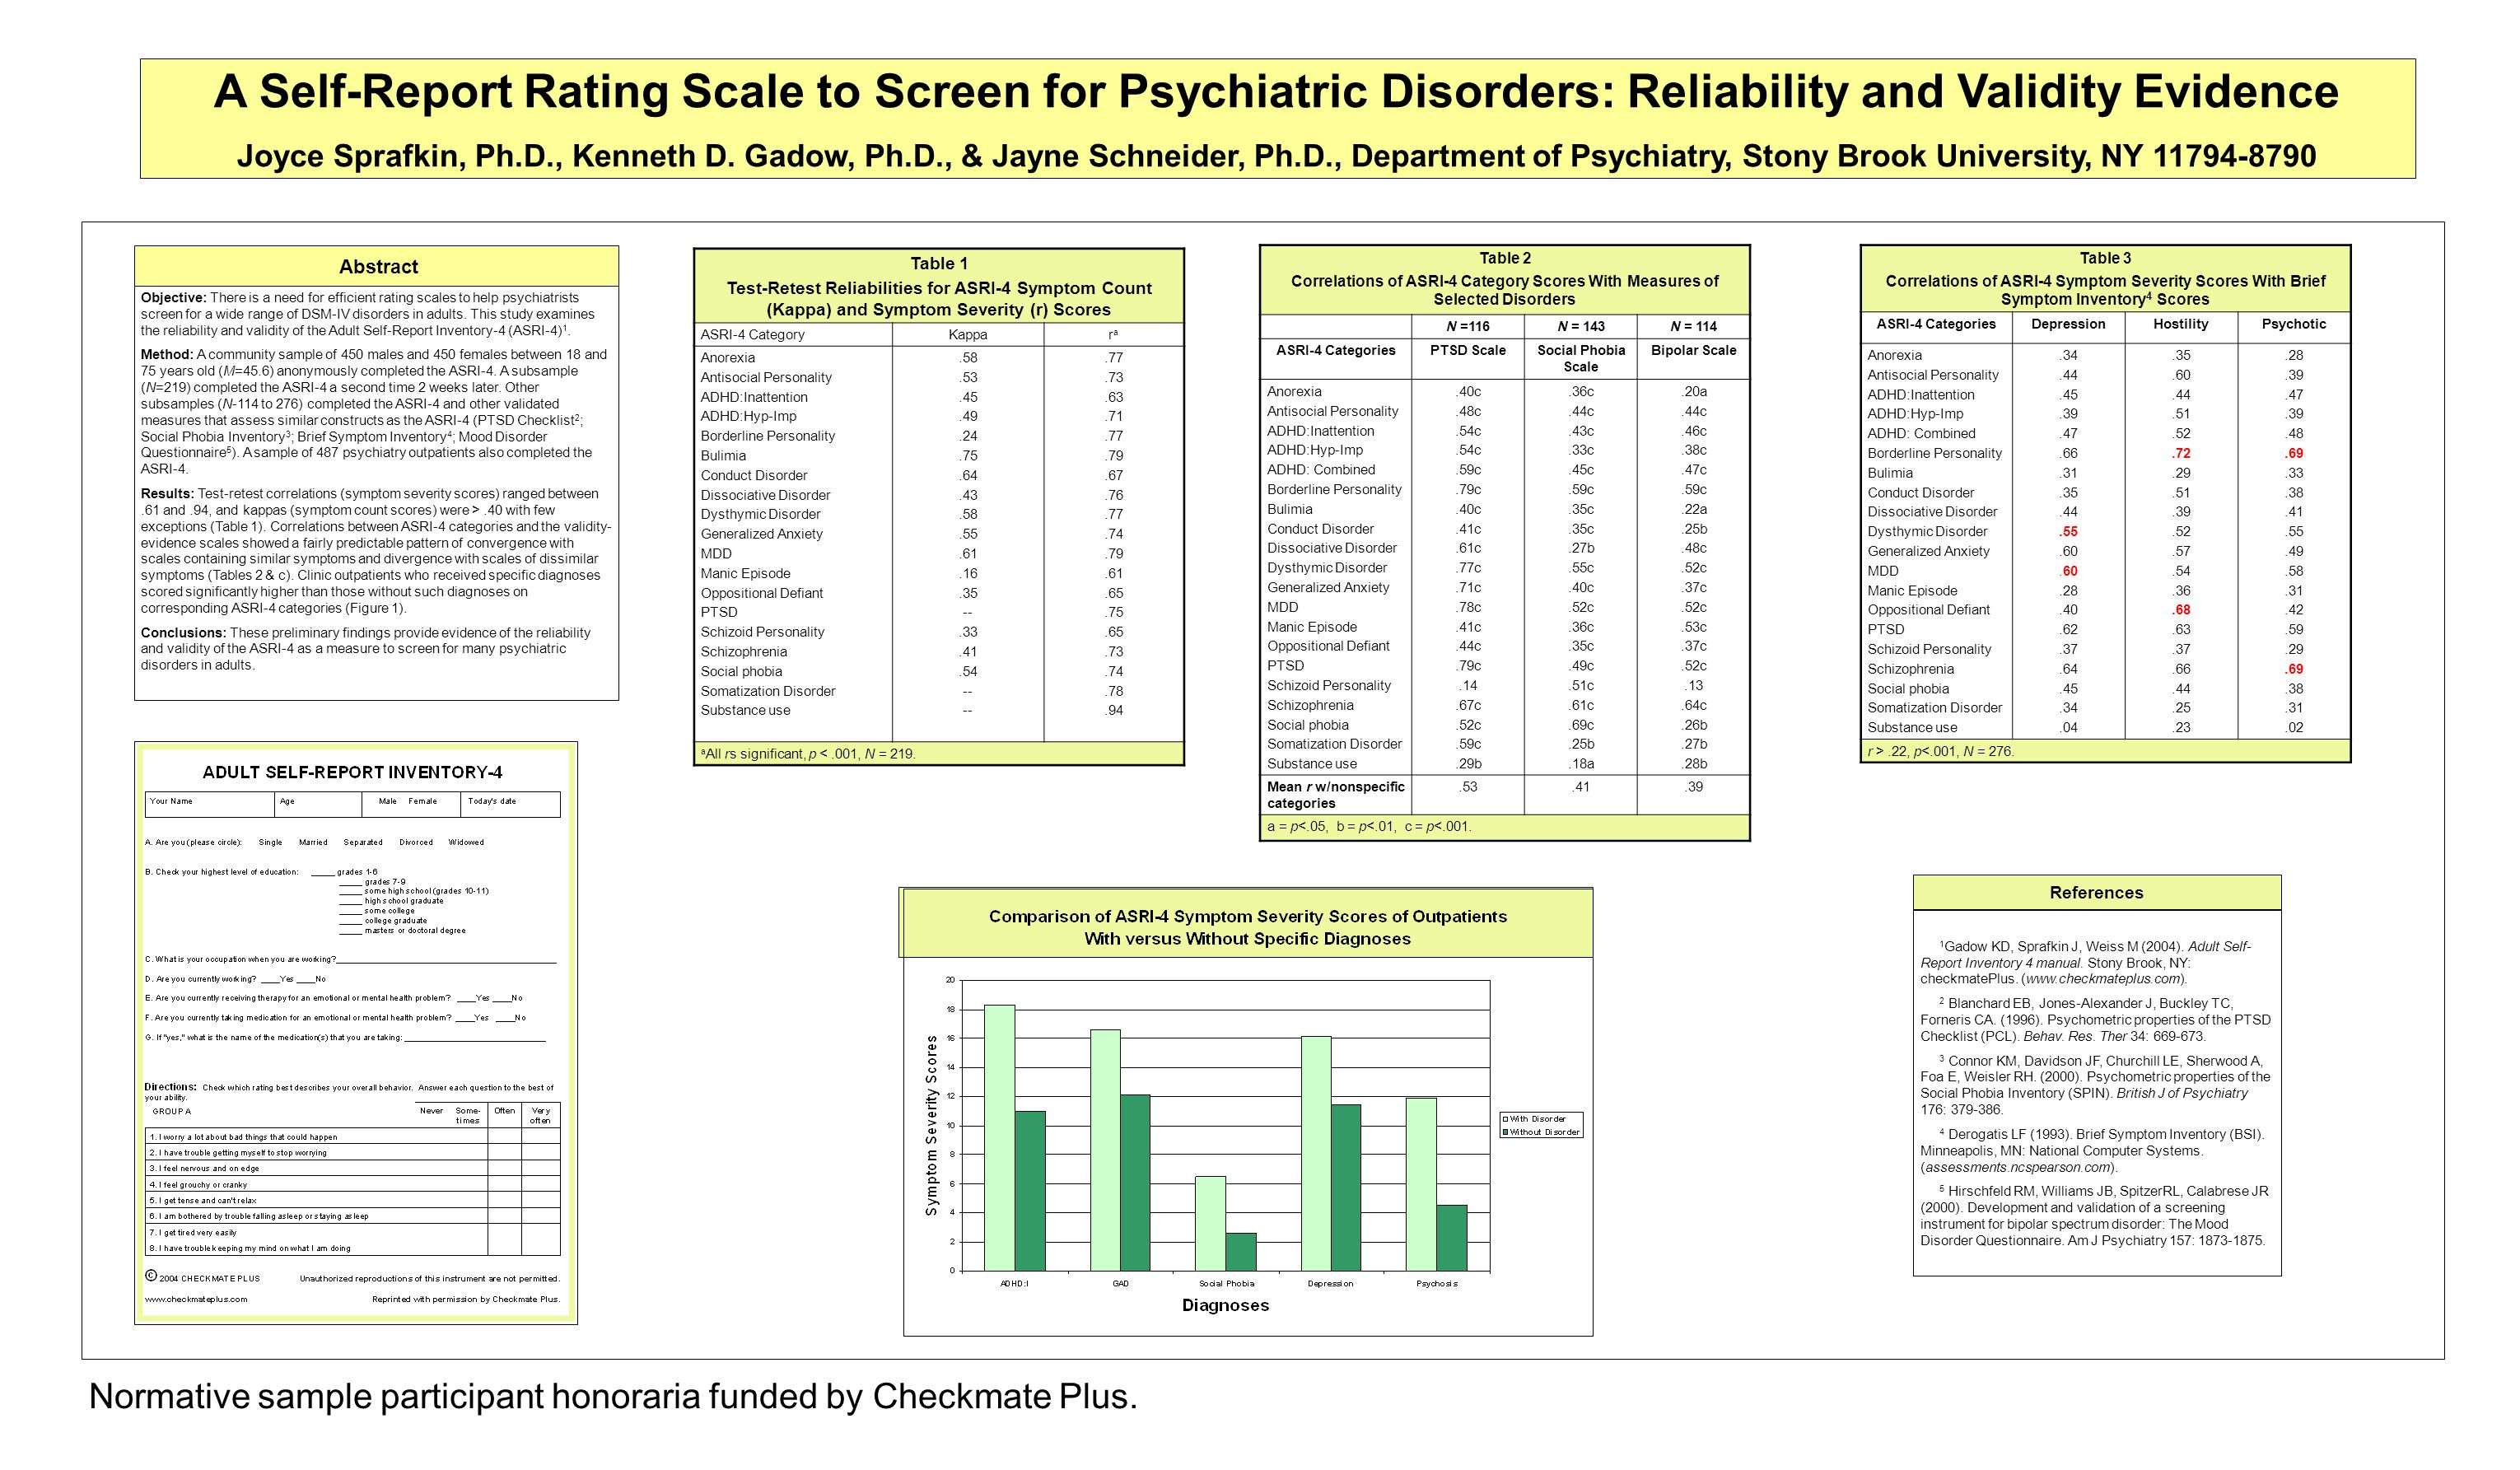 self rating scale The hamilton depression rating scale is the most widely used interview scale, developed in 1960 to measure severity of depression in an inpatient population since then, many versions have been adapted, including structured interview guides, self-report forms, and computerized versions the beck.